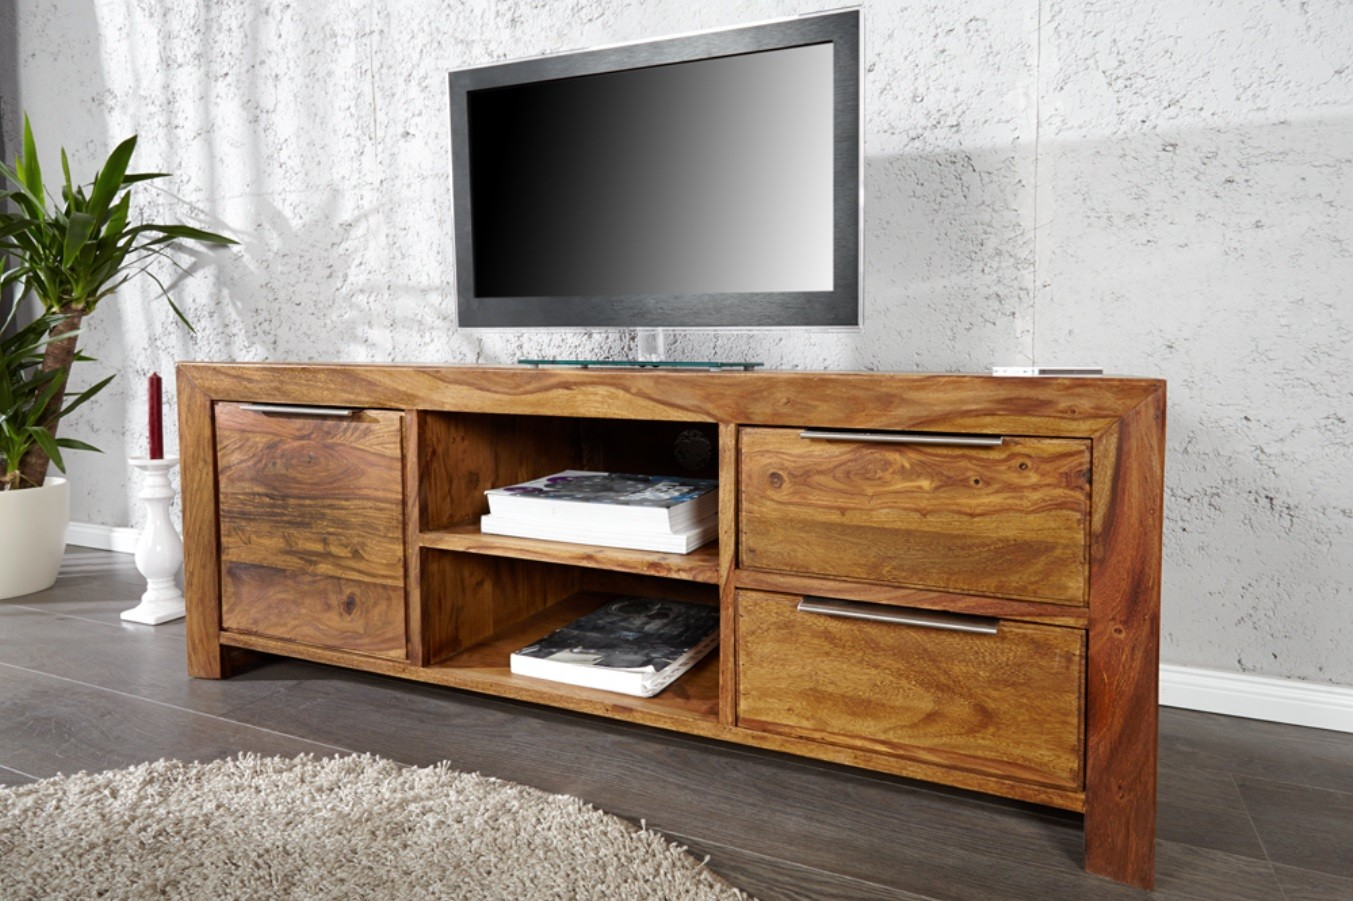 Meuble Tv En Bois Massif Idees De Decoration Interieure French Decor